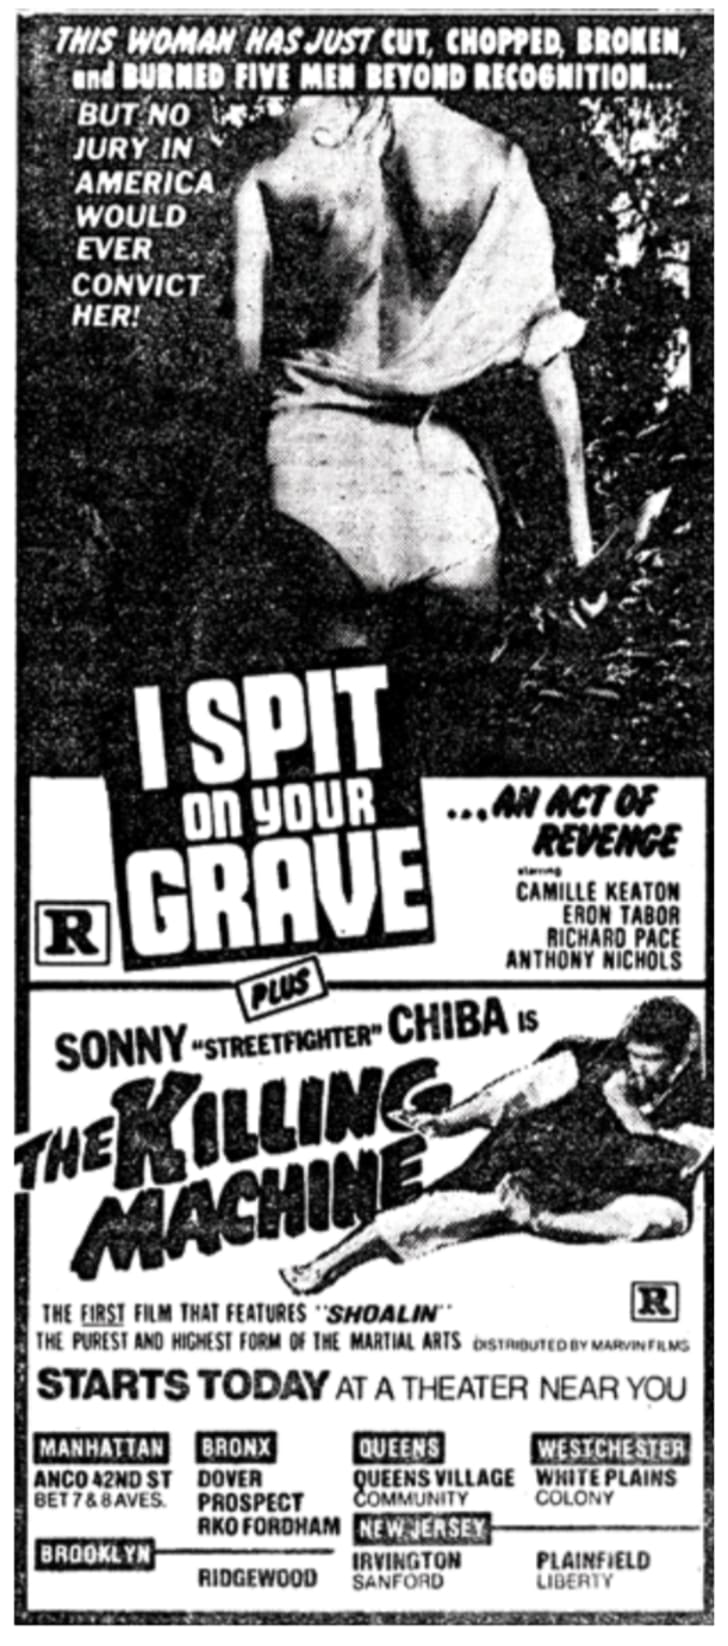 An ad for 'I Spit on Your Grave'